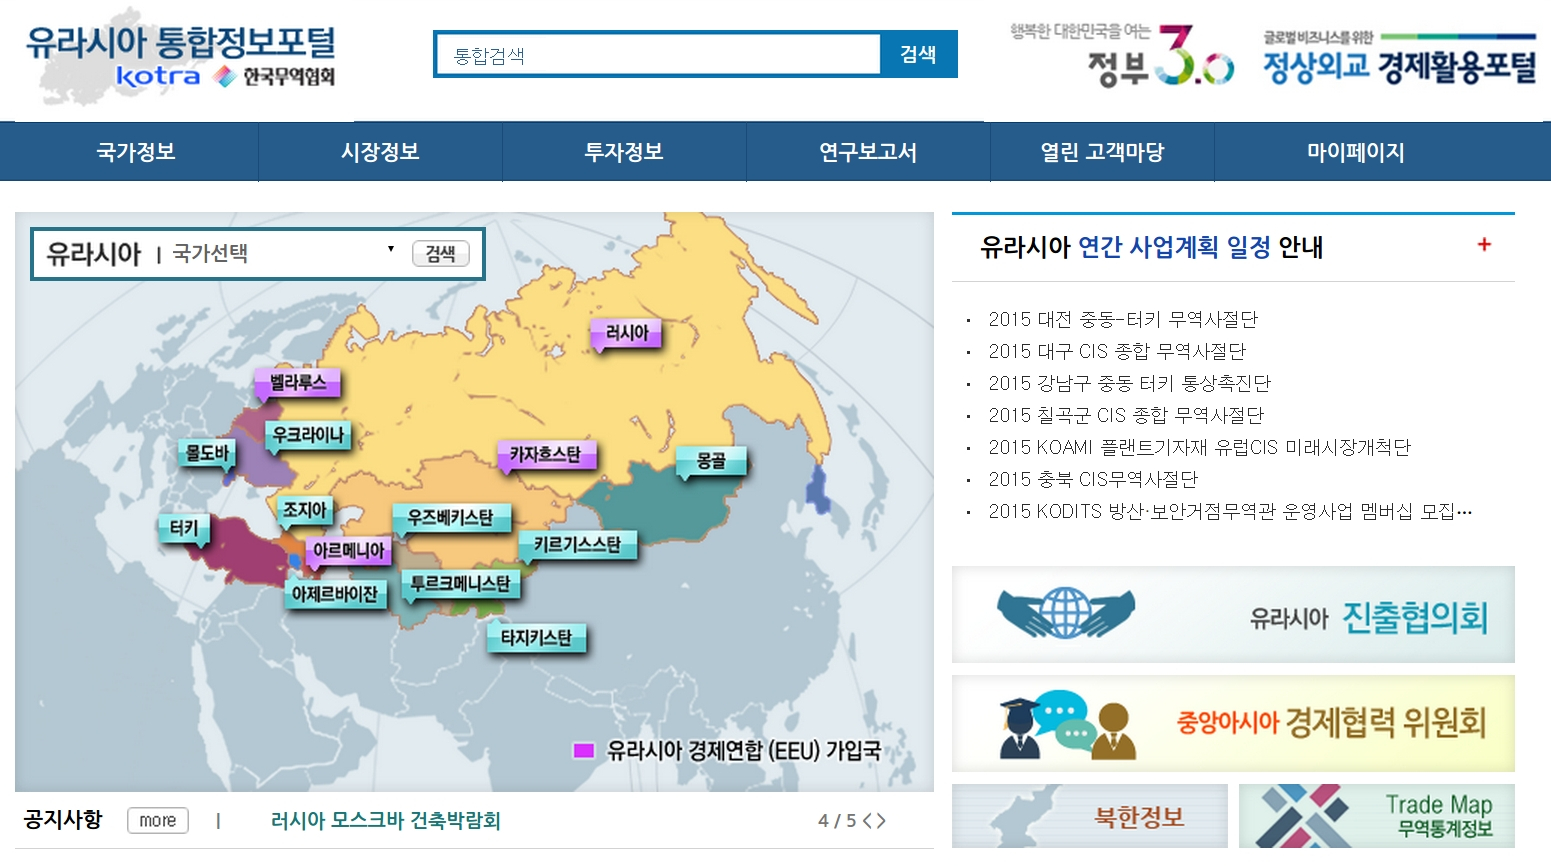 The front page of www.i-eurasia.org by KOTRA, indicating the countries included in their focus.